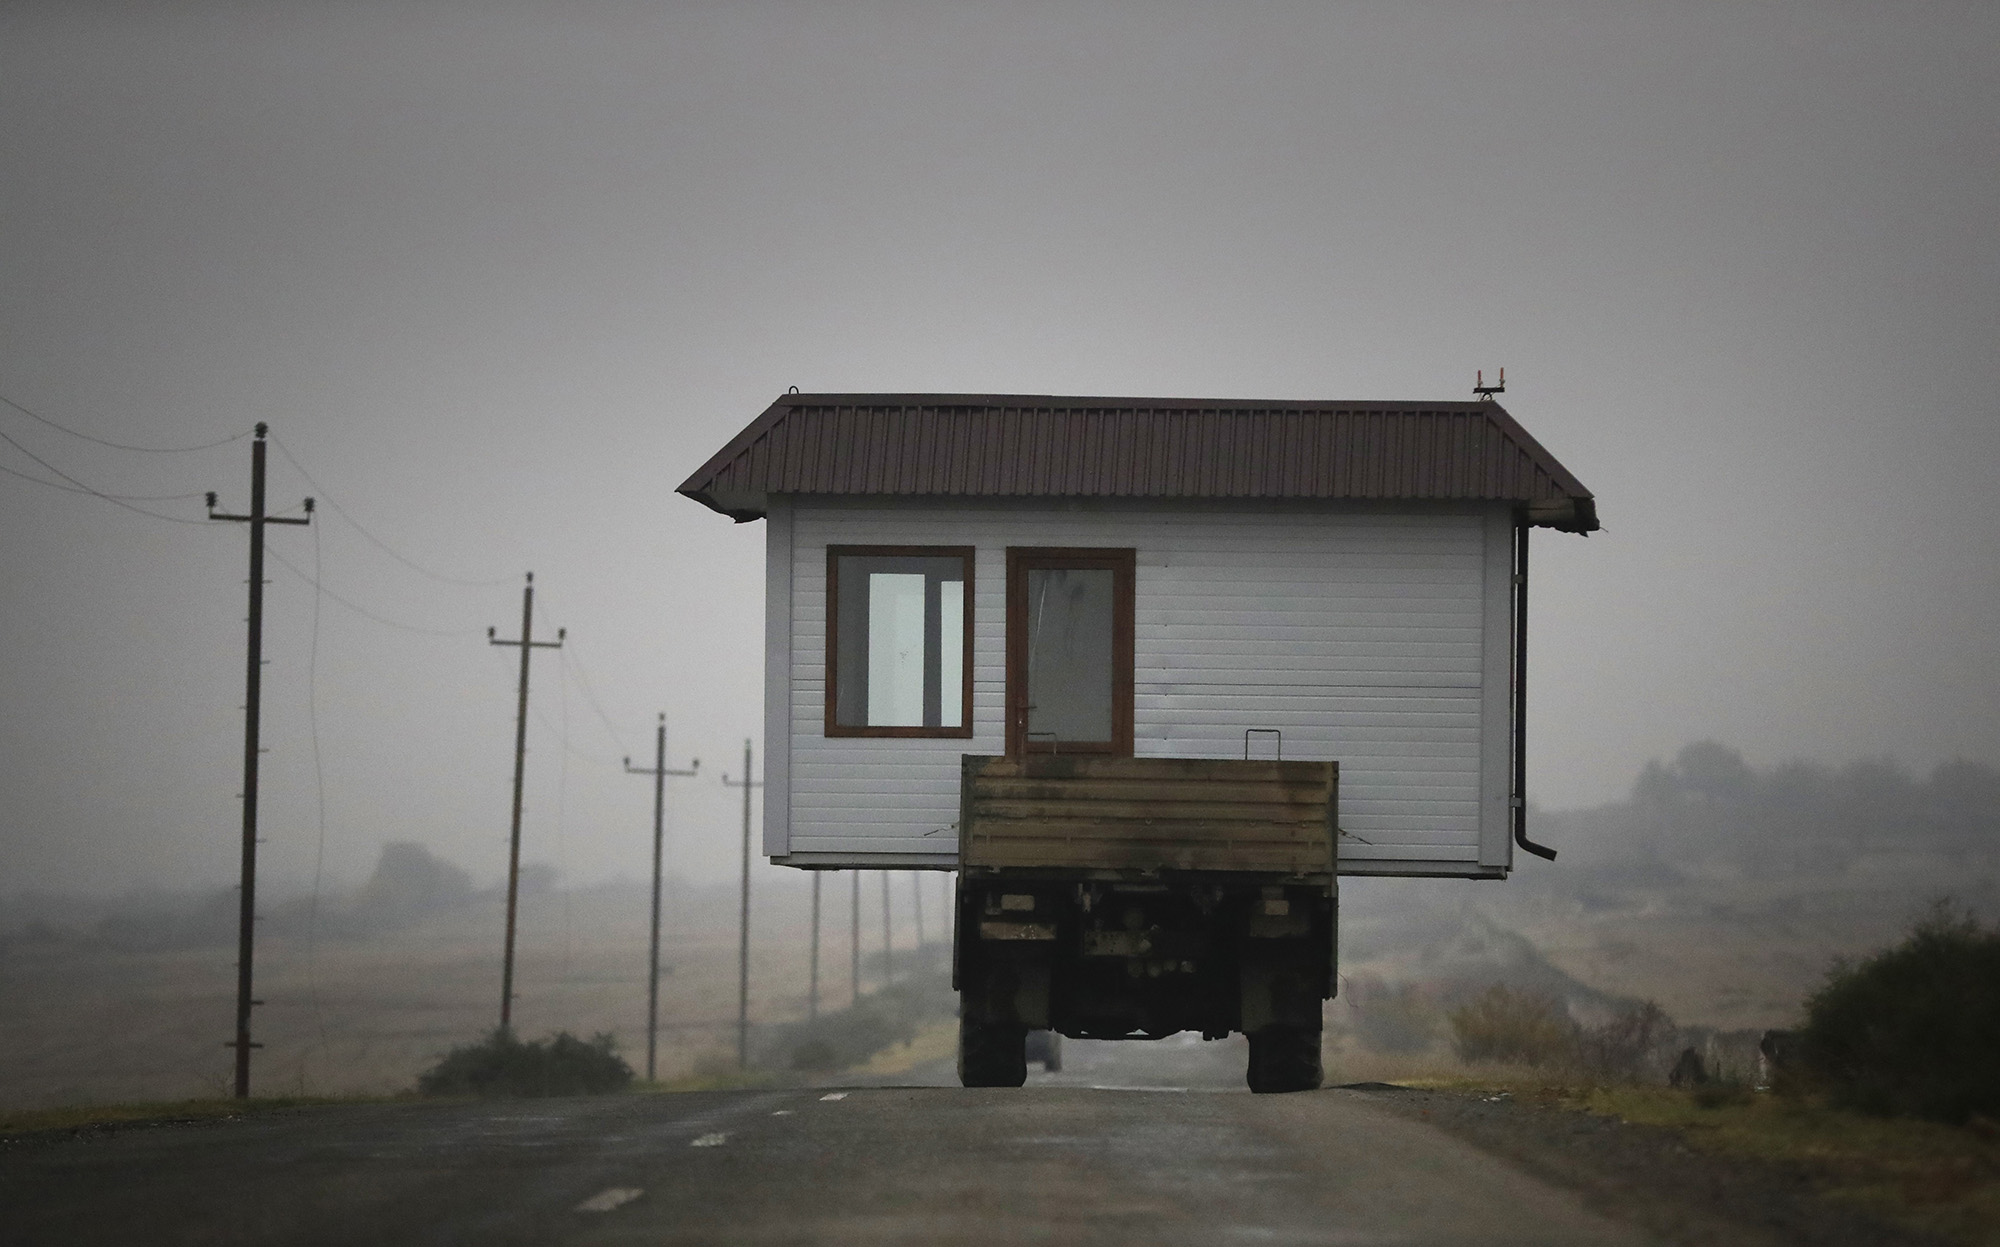 A family drives a truck loaded with a small house along a highway as they leave their home village in the separatist region of Nagorno-Karabakh, Wednesday, Nov. 18, 2020. A Russia-brokered cease-fire to halt six weeks of fighting over Nagorno-Karabakh stipulated that Armenia turn over control of some areas it holds outside the separatist territory's borders to Azerbaijan. Armenians are forced to leave their homes before the region is handed over to control by Azerbaijani forces. (AP Photo/Sergei Grits